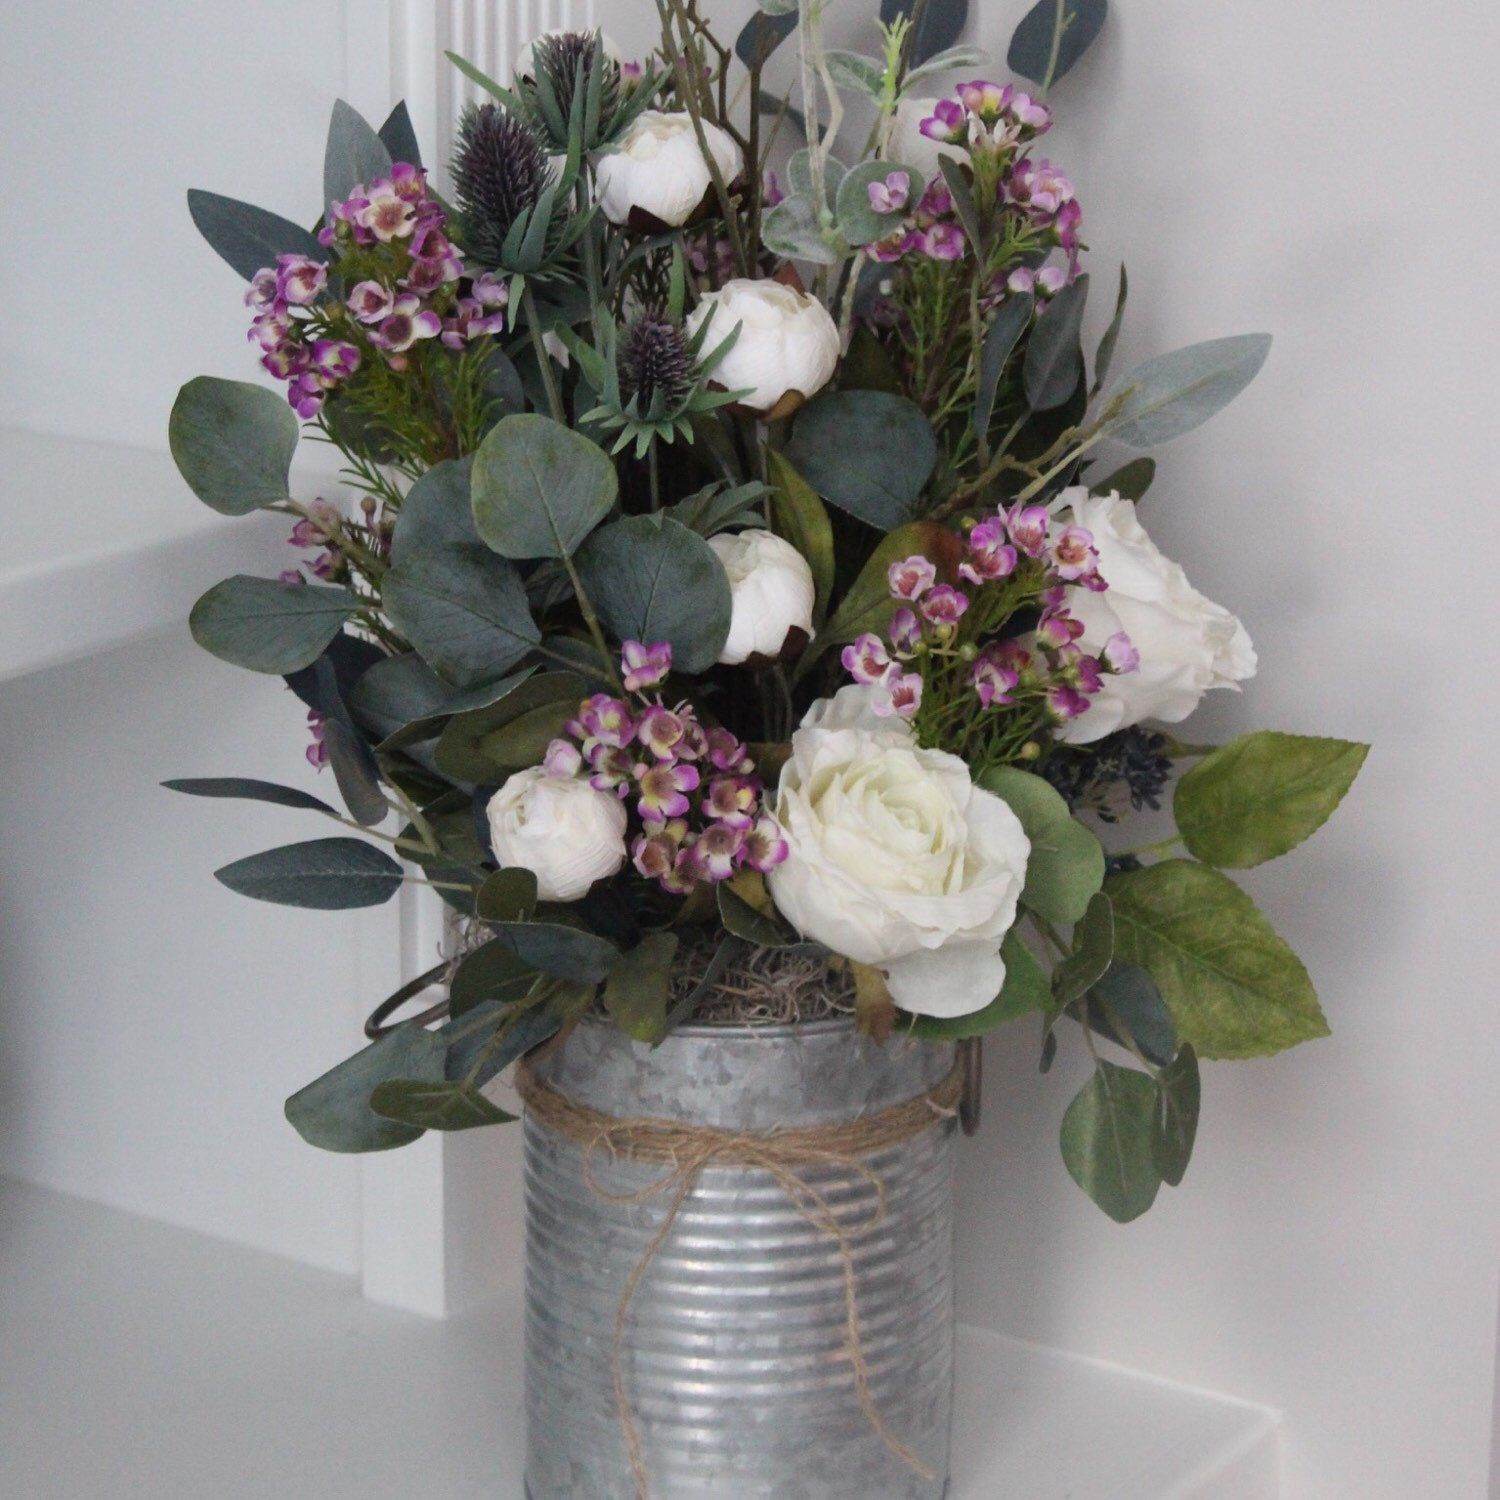 Eucalyptus mini peonies and roses make this arrangement a perfect piece for spring